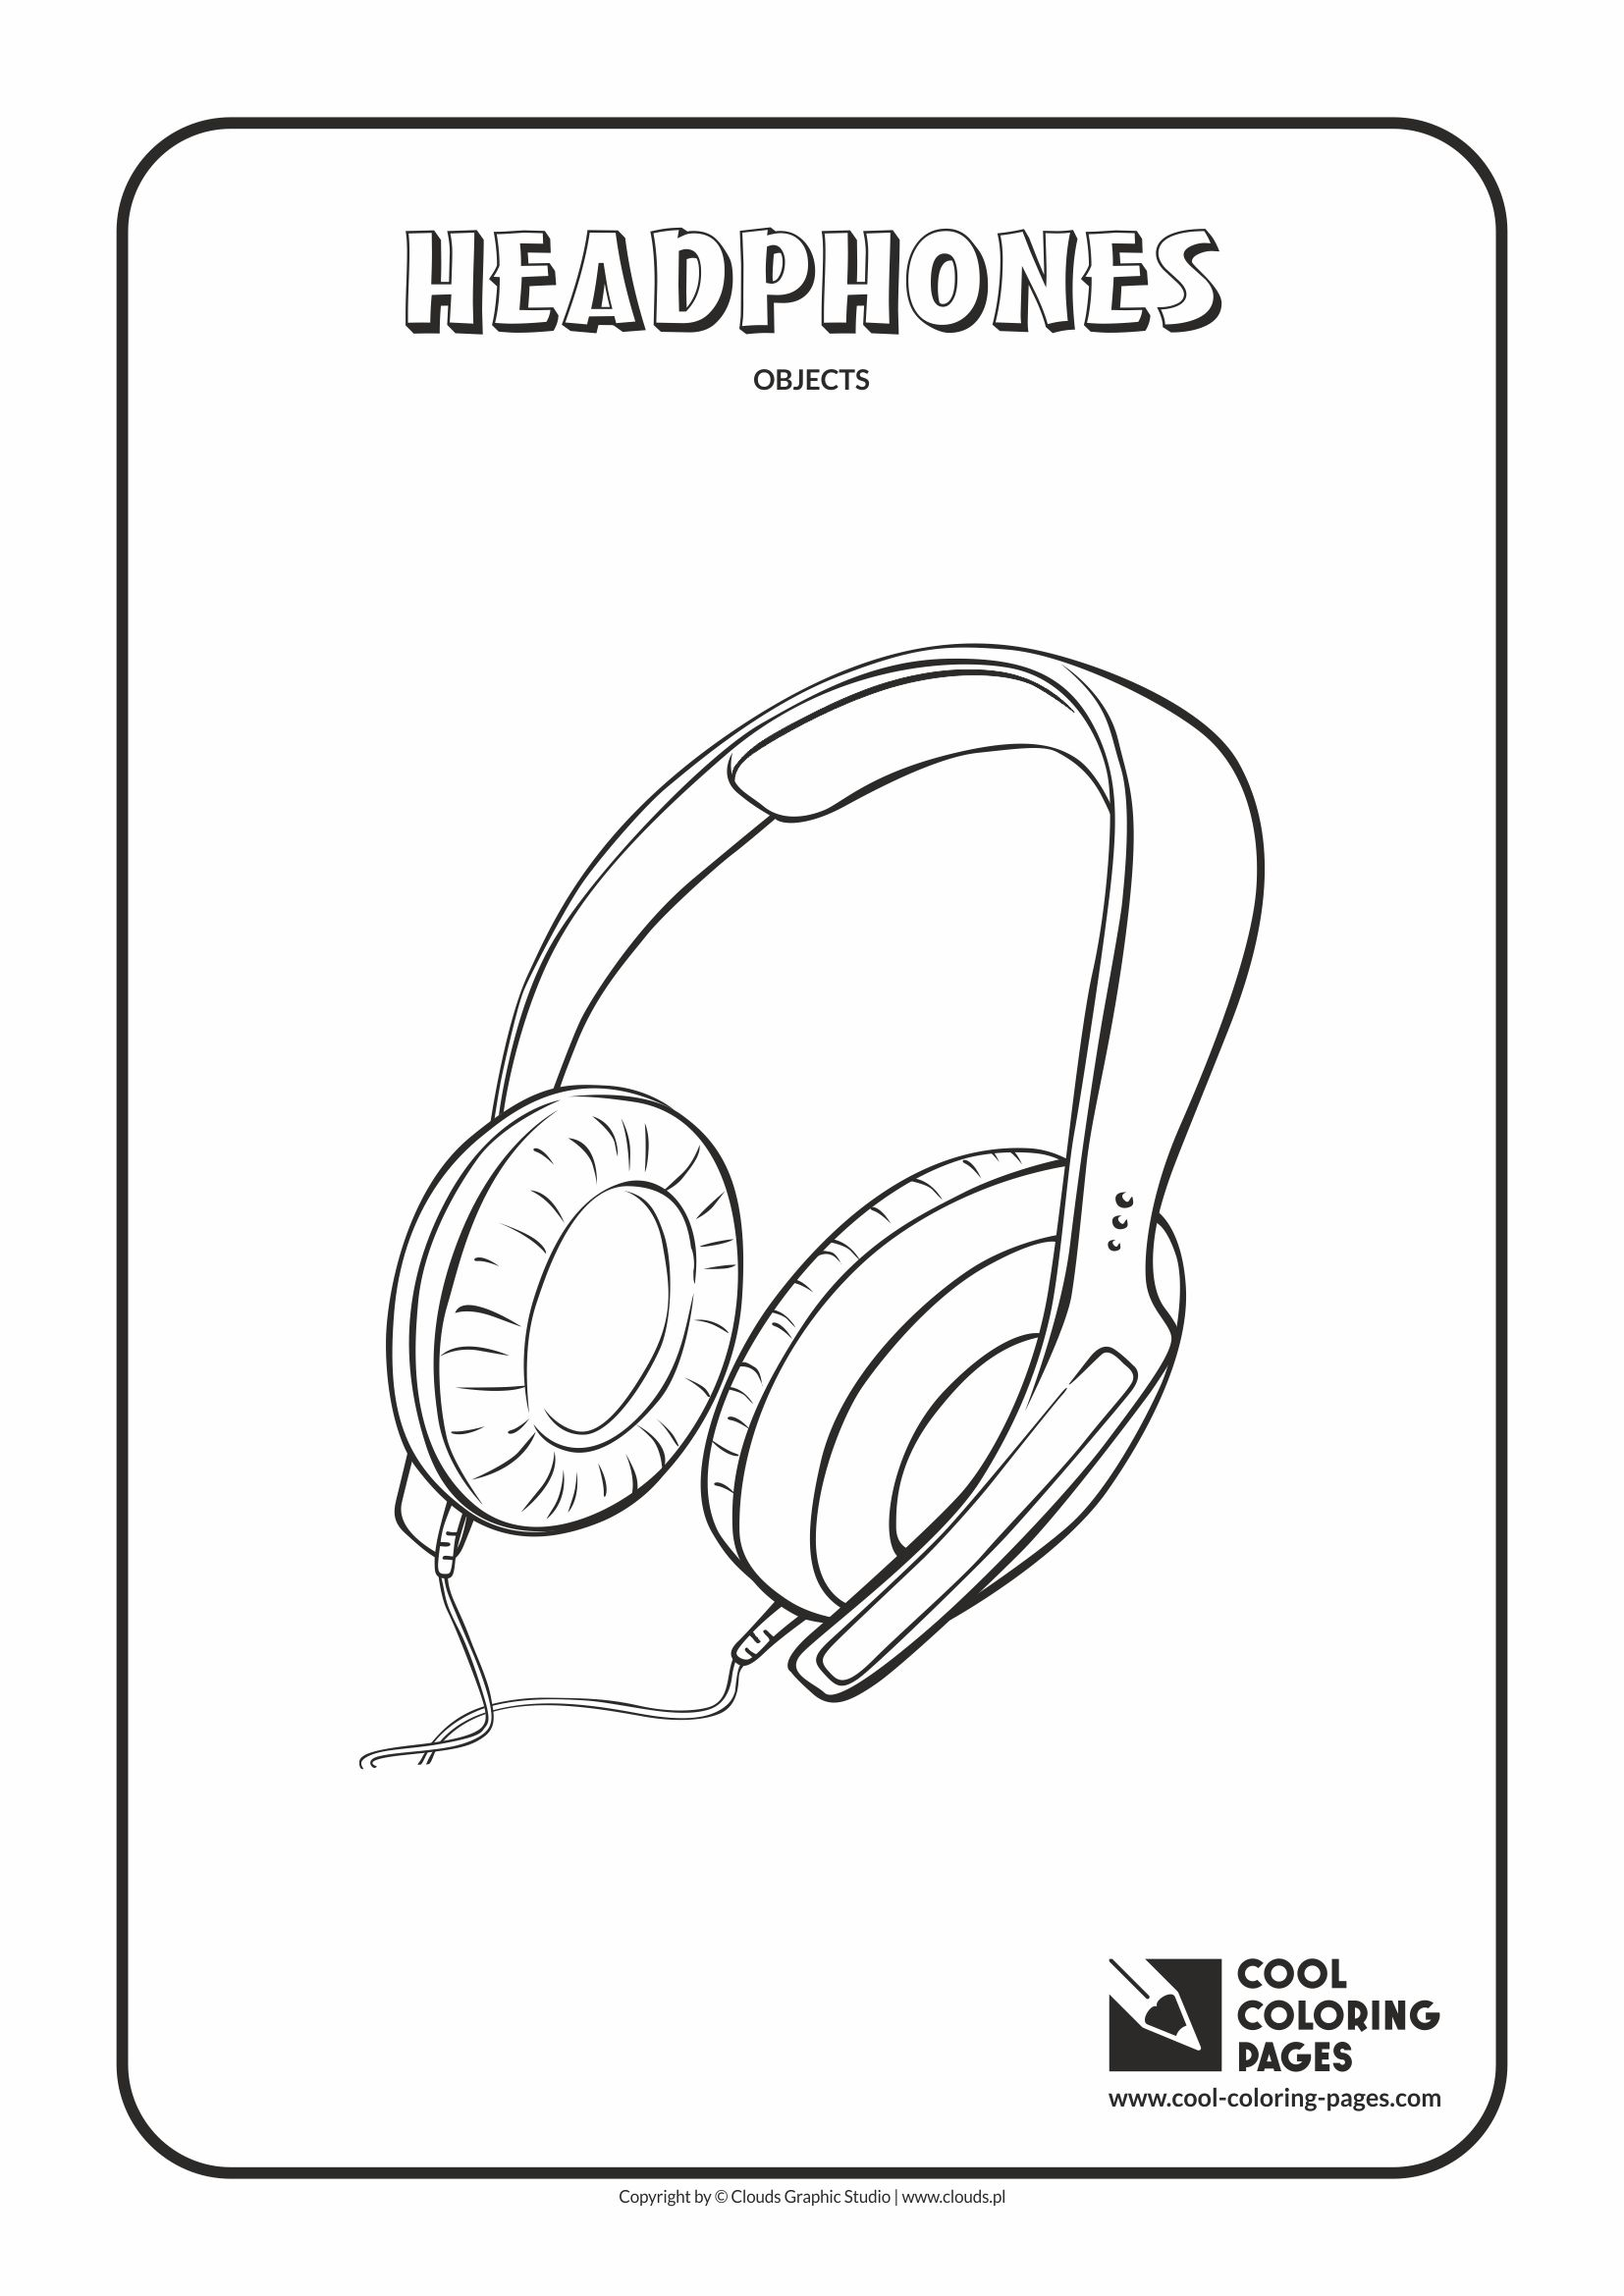 Cool Coloring Pages Coloring Objects